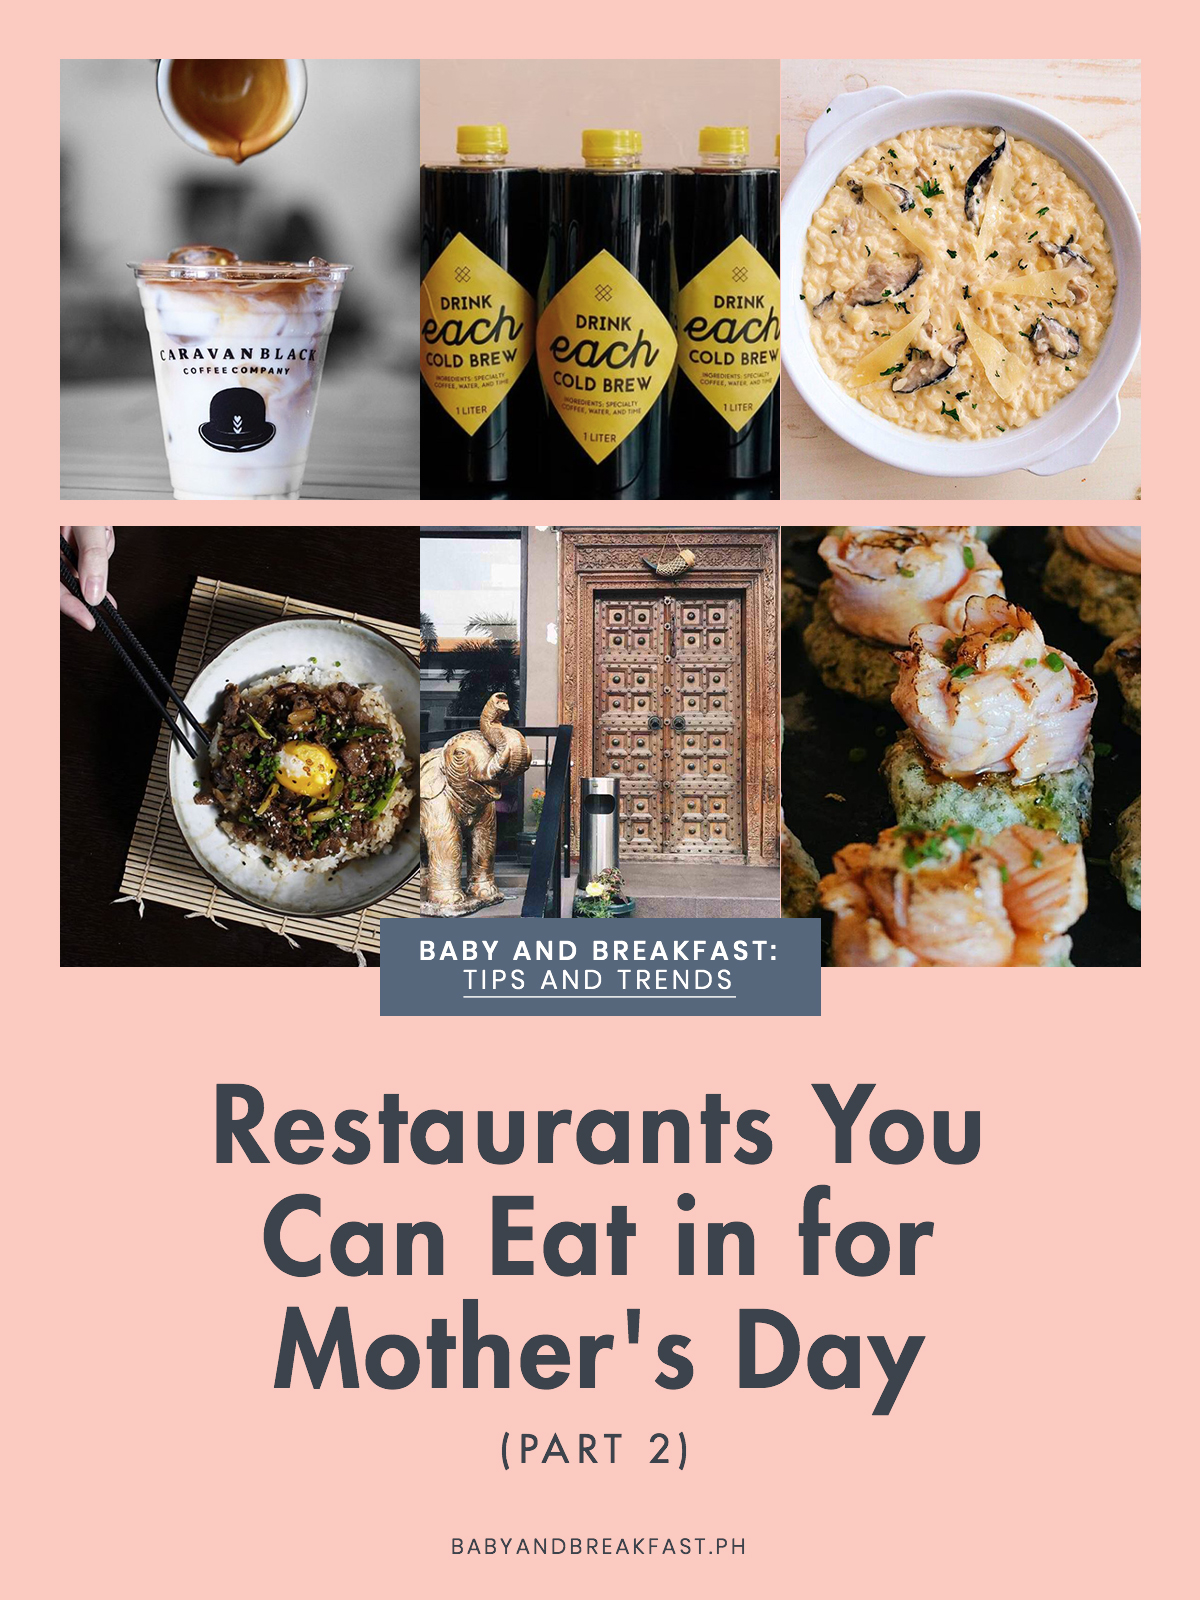 Baby and Breakfast: Tips and Trends Restaurants You Can Eat in for Mother's Day (Part 2)